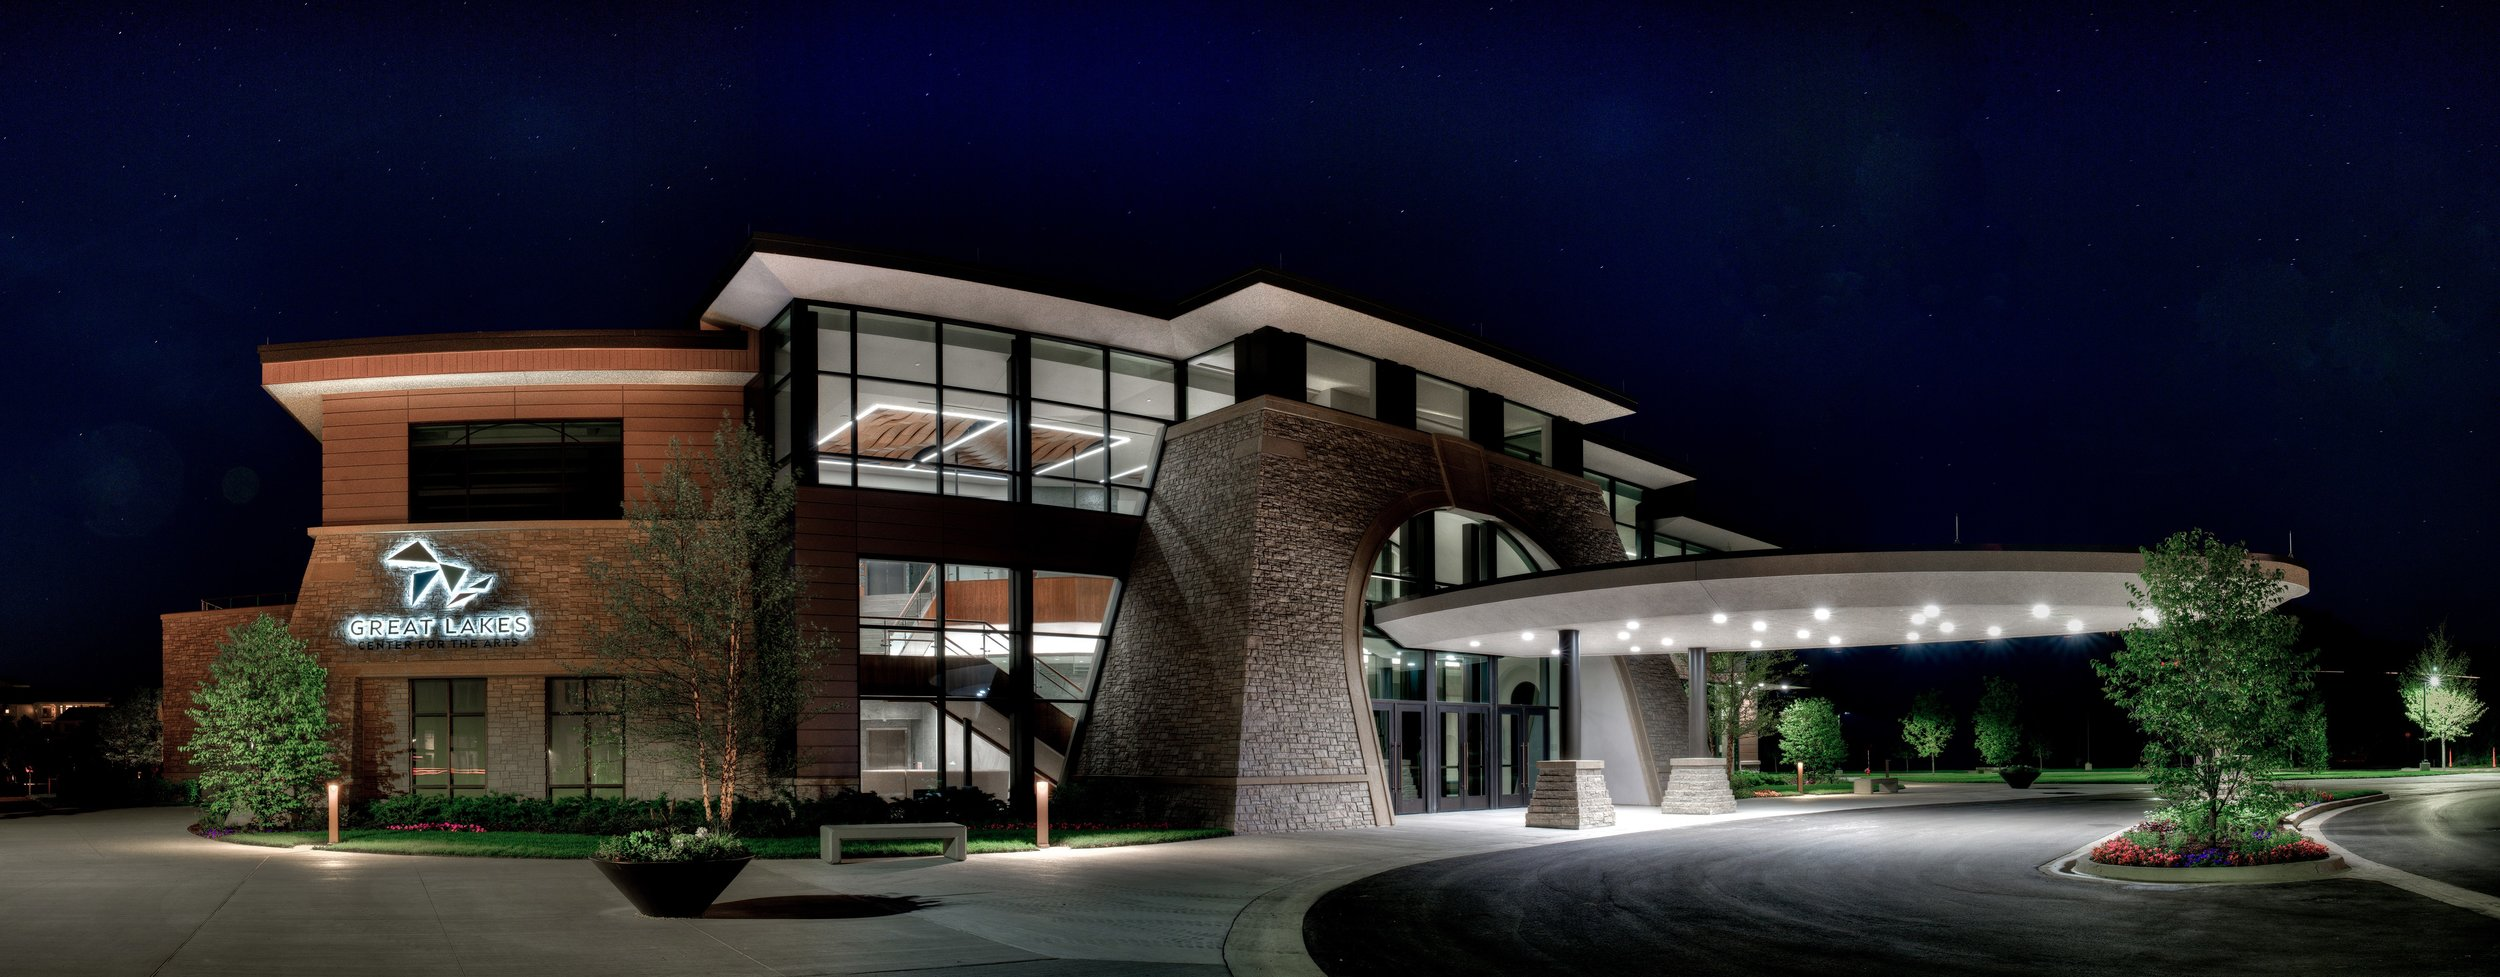 Great Lakes Center for the Arts - New Performing Arts Center - $20,000,000